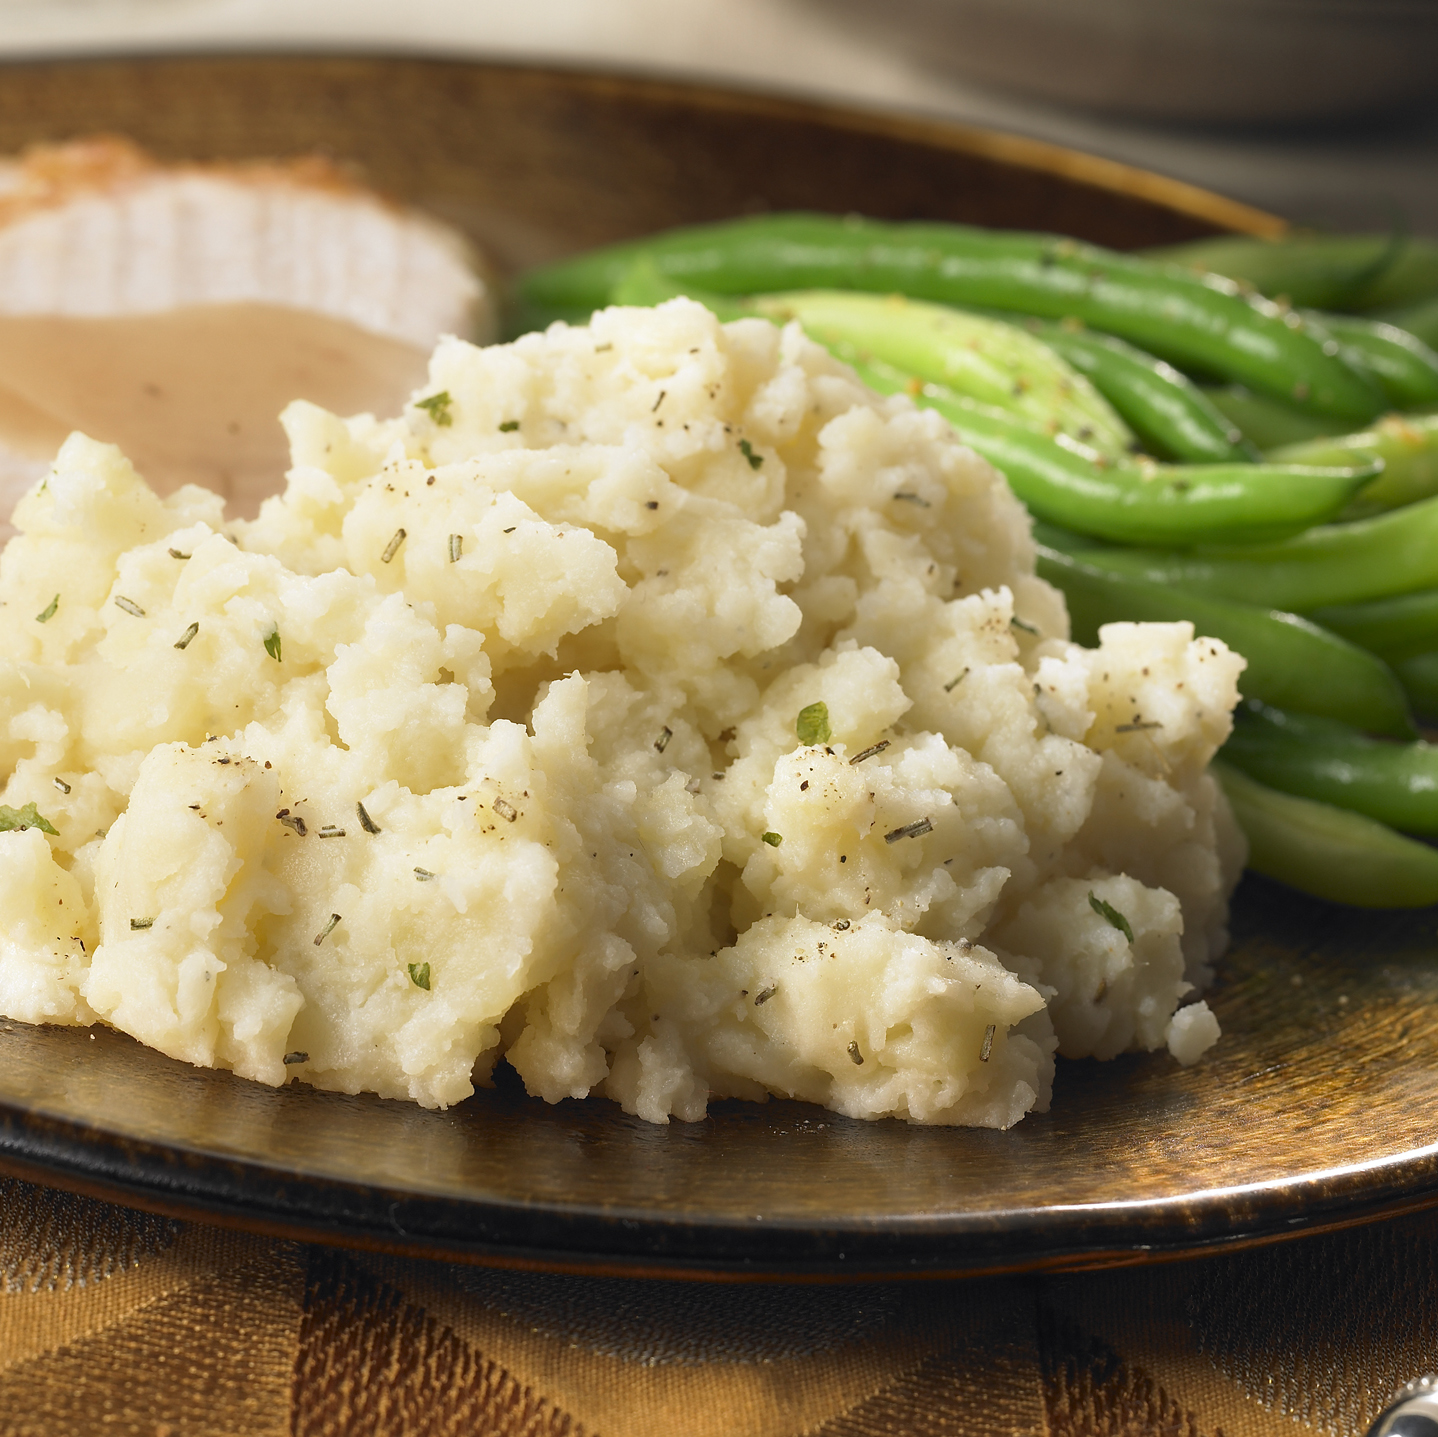 Recipes Course Side Dish Potatoes Garlic Rosemary Mashed Potatoes